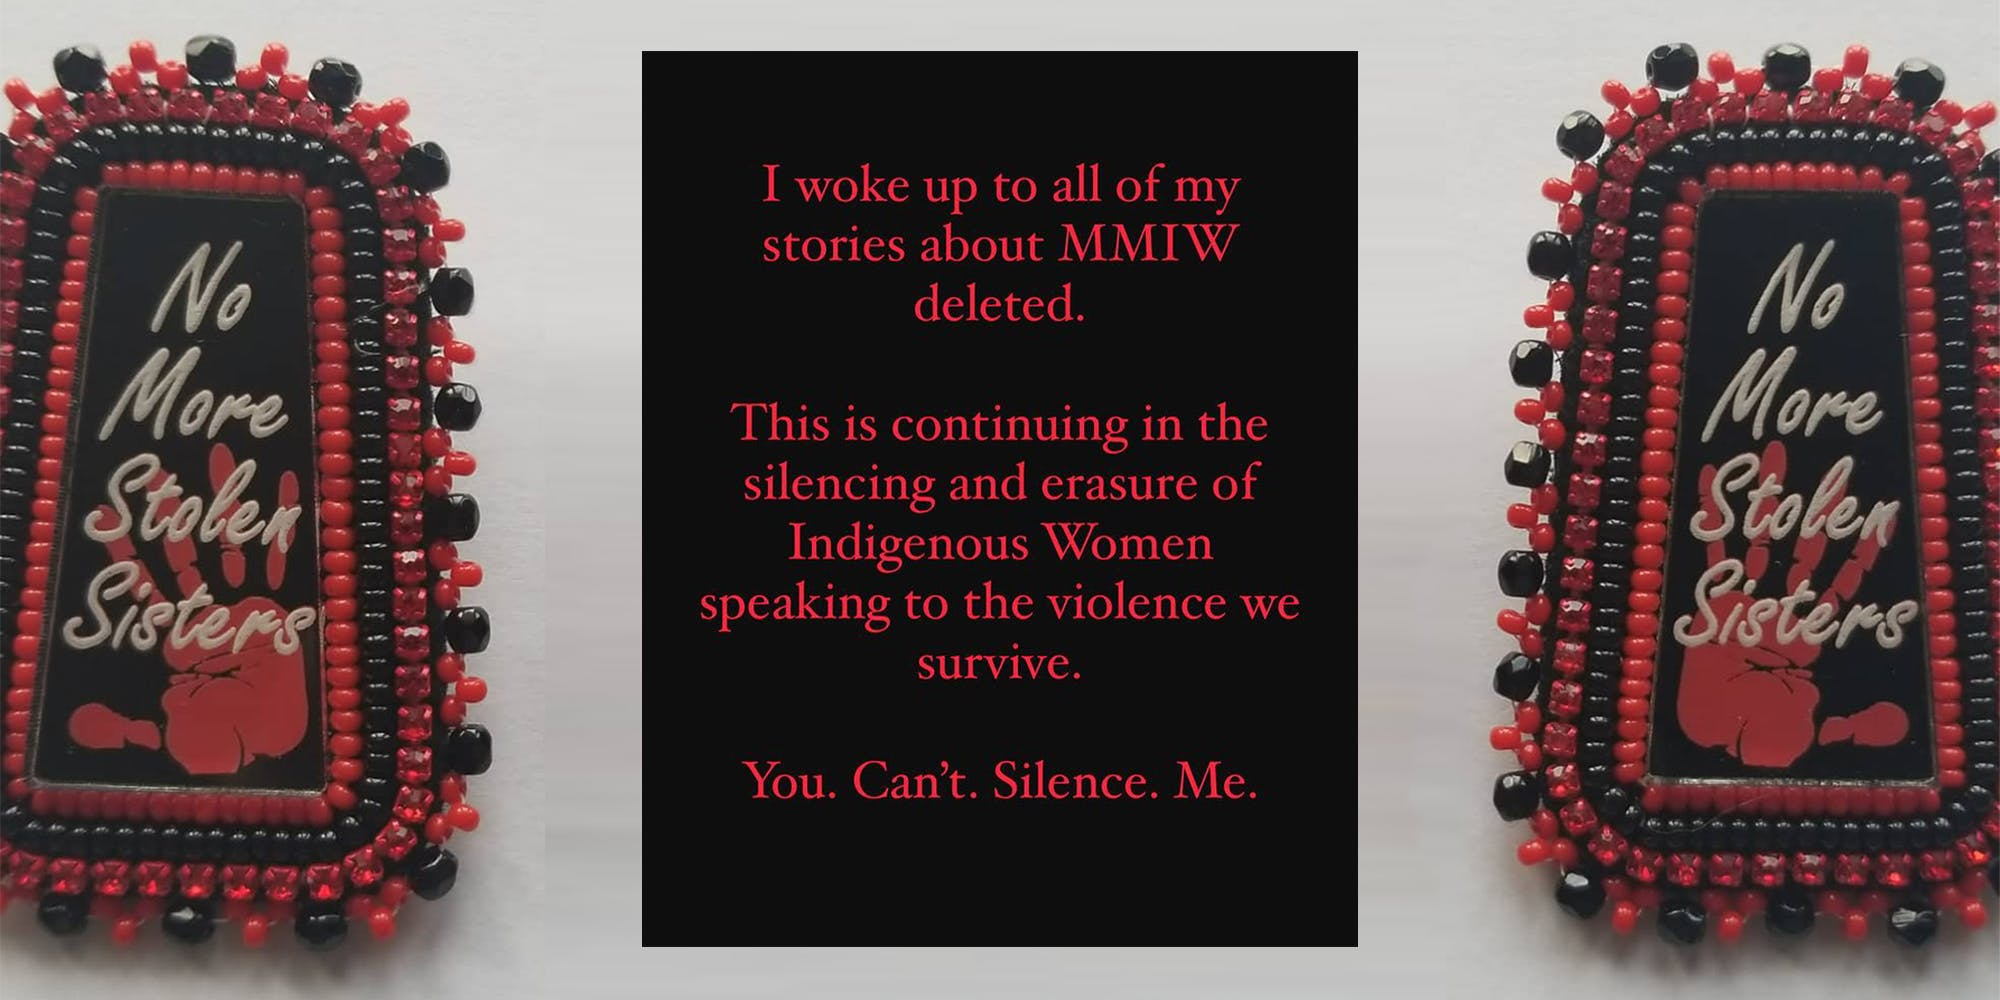 """""""No more stolen sisters"""" beadwork with """"I woke up to all of my stories about MMIW deleted. This is continuing in the silencing and erasure of Indigenous Women speaking to the violence we survive. You. Can't. Silence. Me."""""""